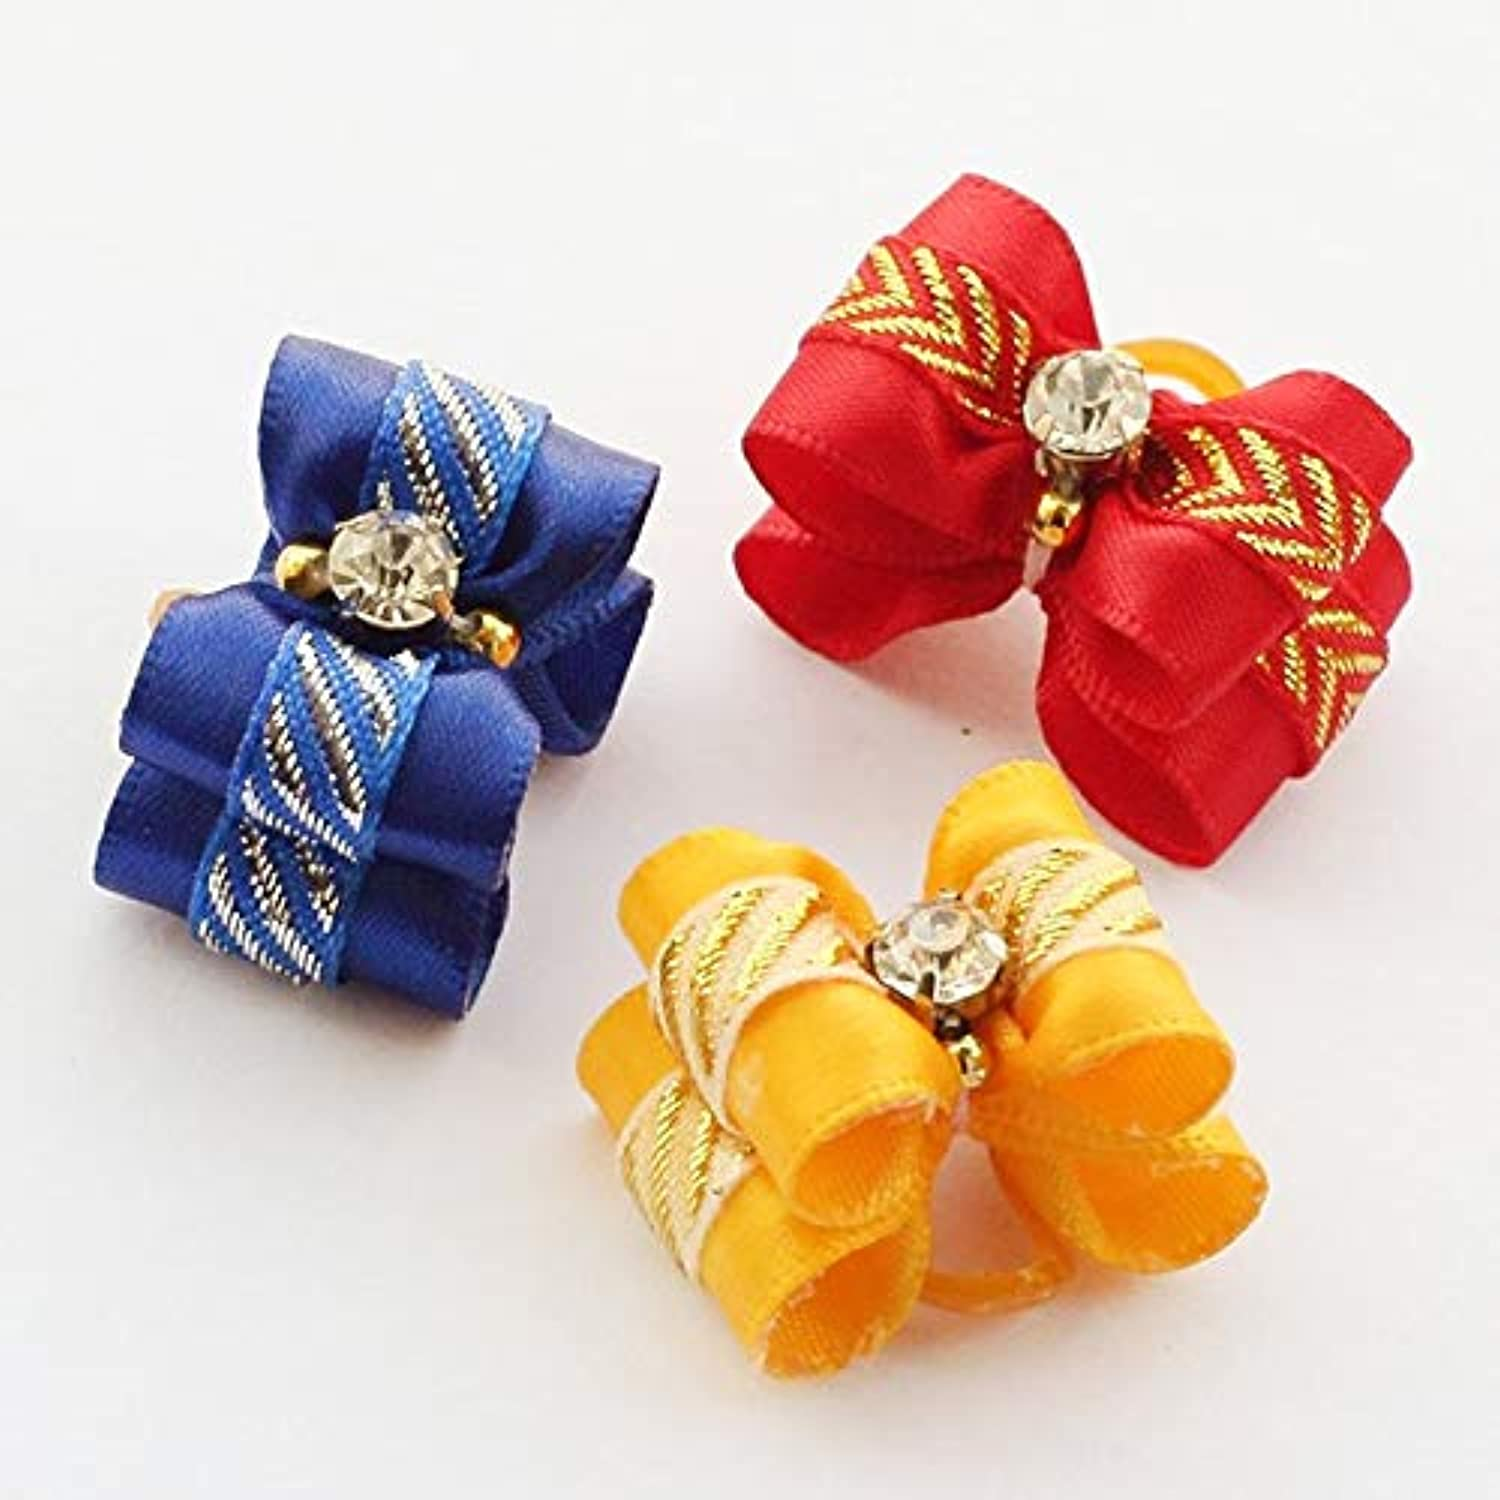 Bow Tie Accessories  Store Handmade Ribbon Hair Dog Bow Dogs Grooming Bows 6021030 Small Pet Wholesale  Men for Dog Women Collar